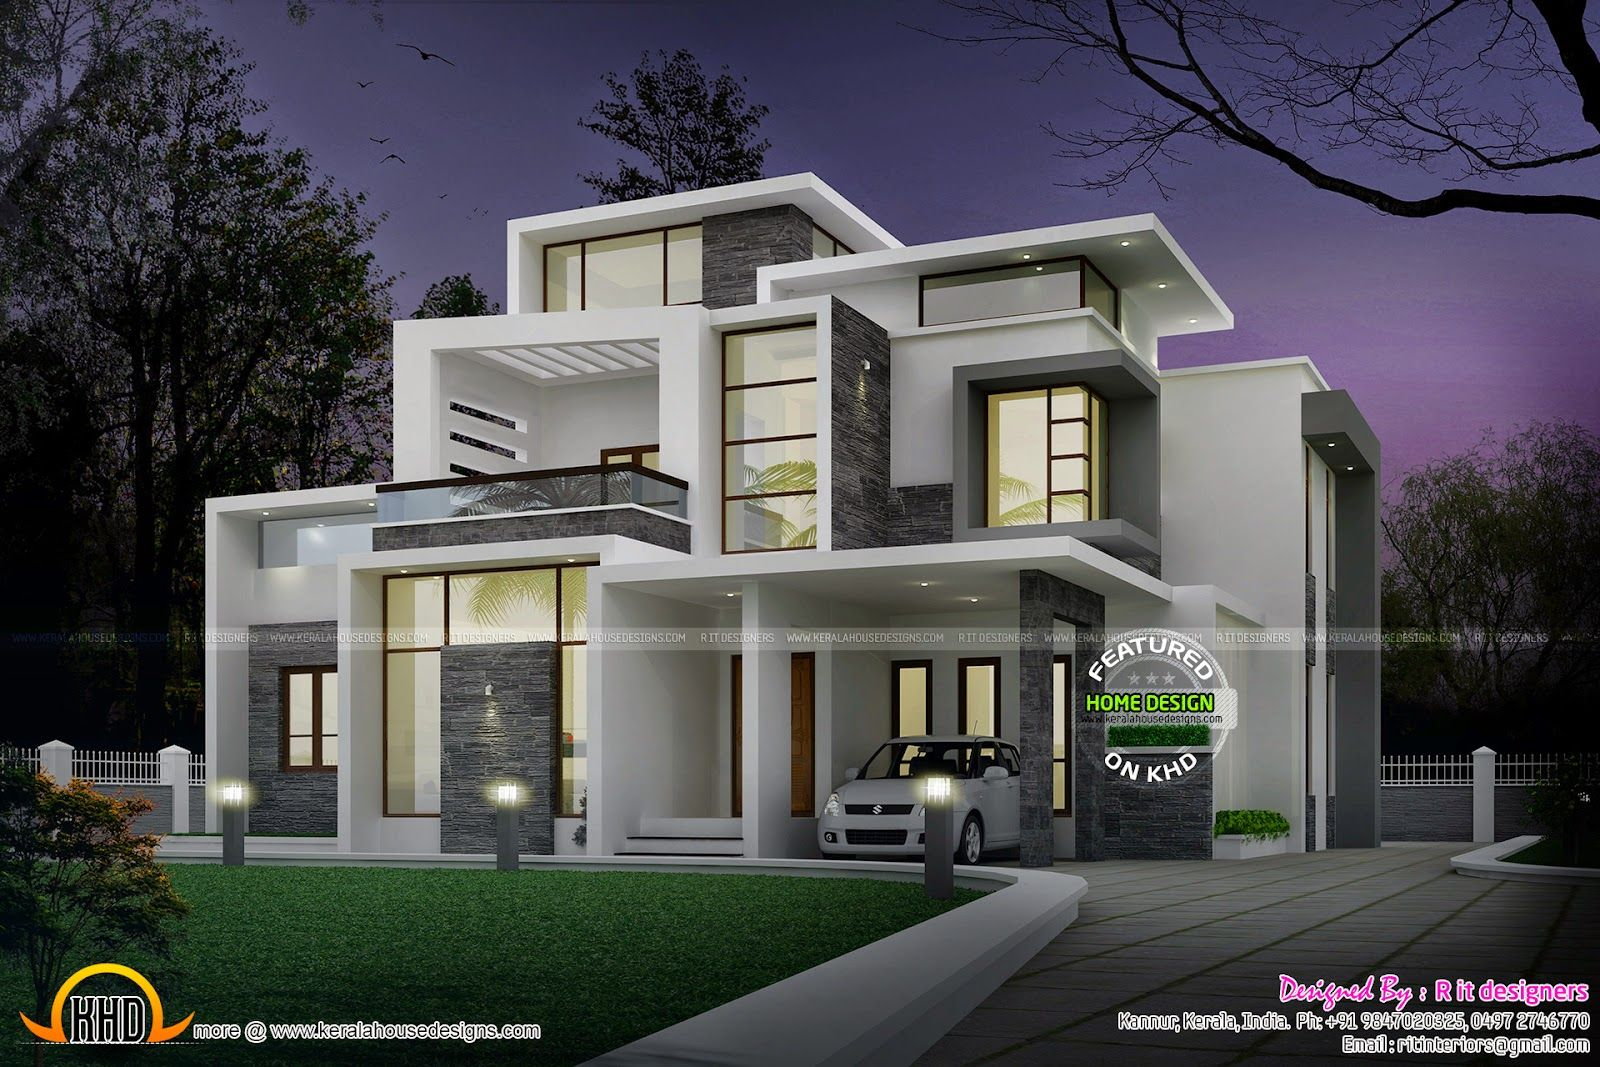 Grand contemporary home design kerala and floor plans also rh hu pinterest